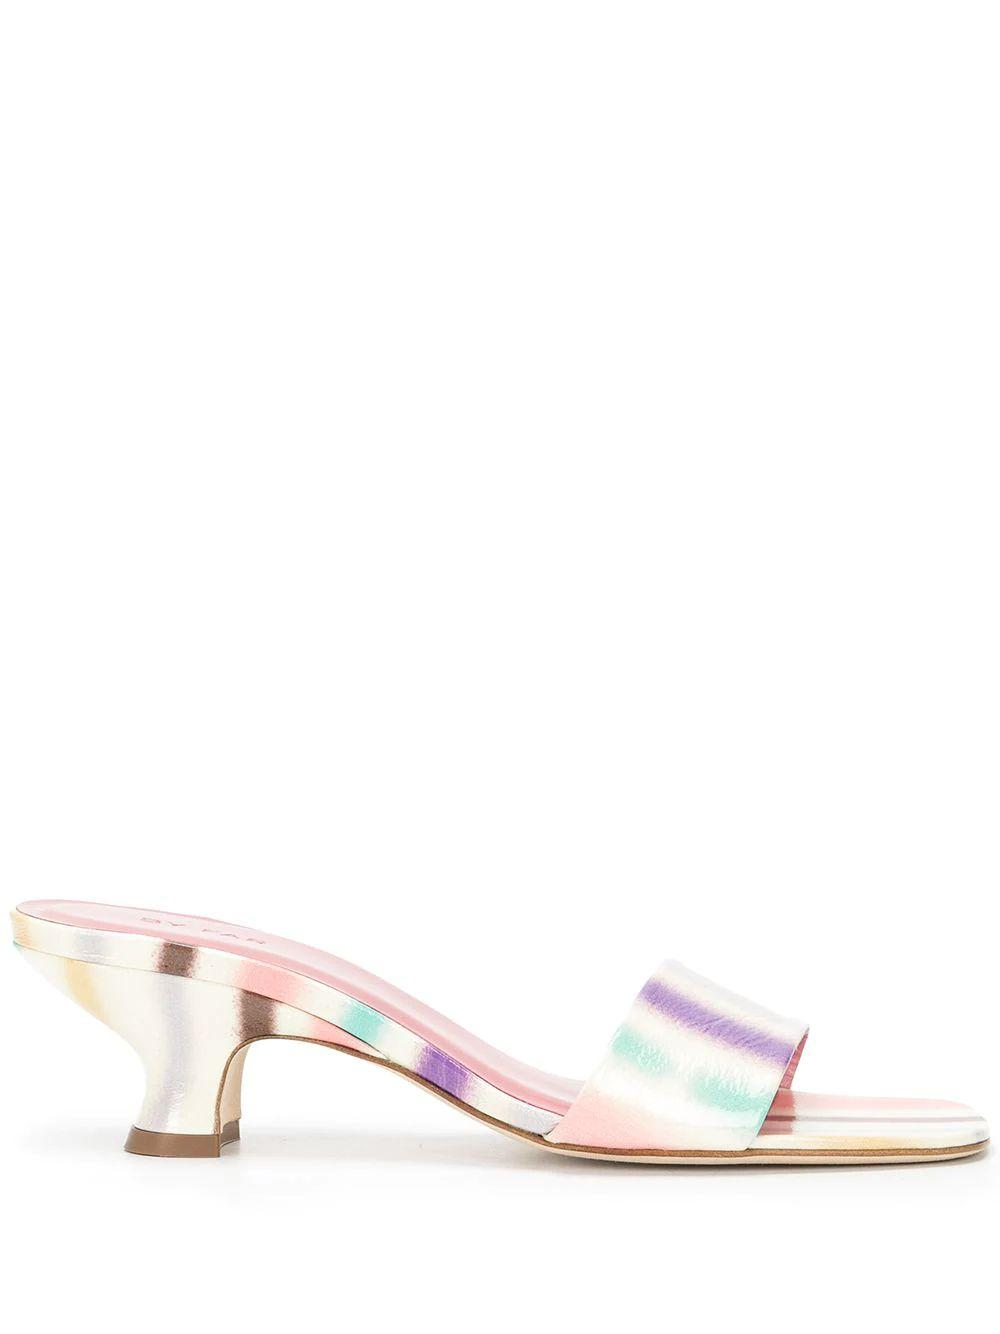 Freddy Striped Slide Sandals